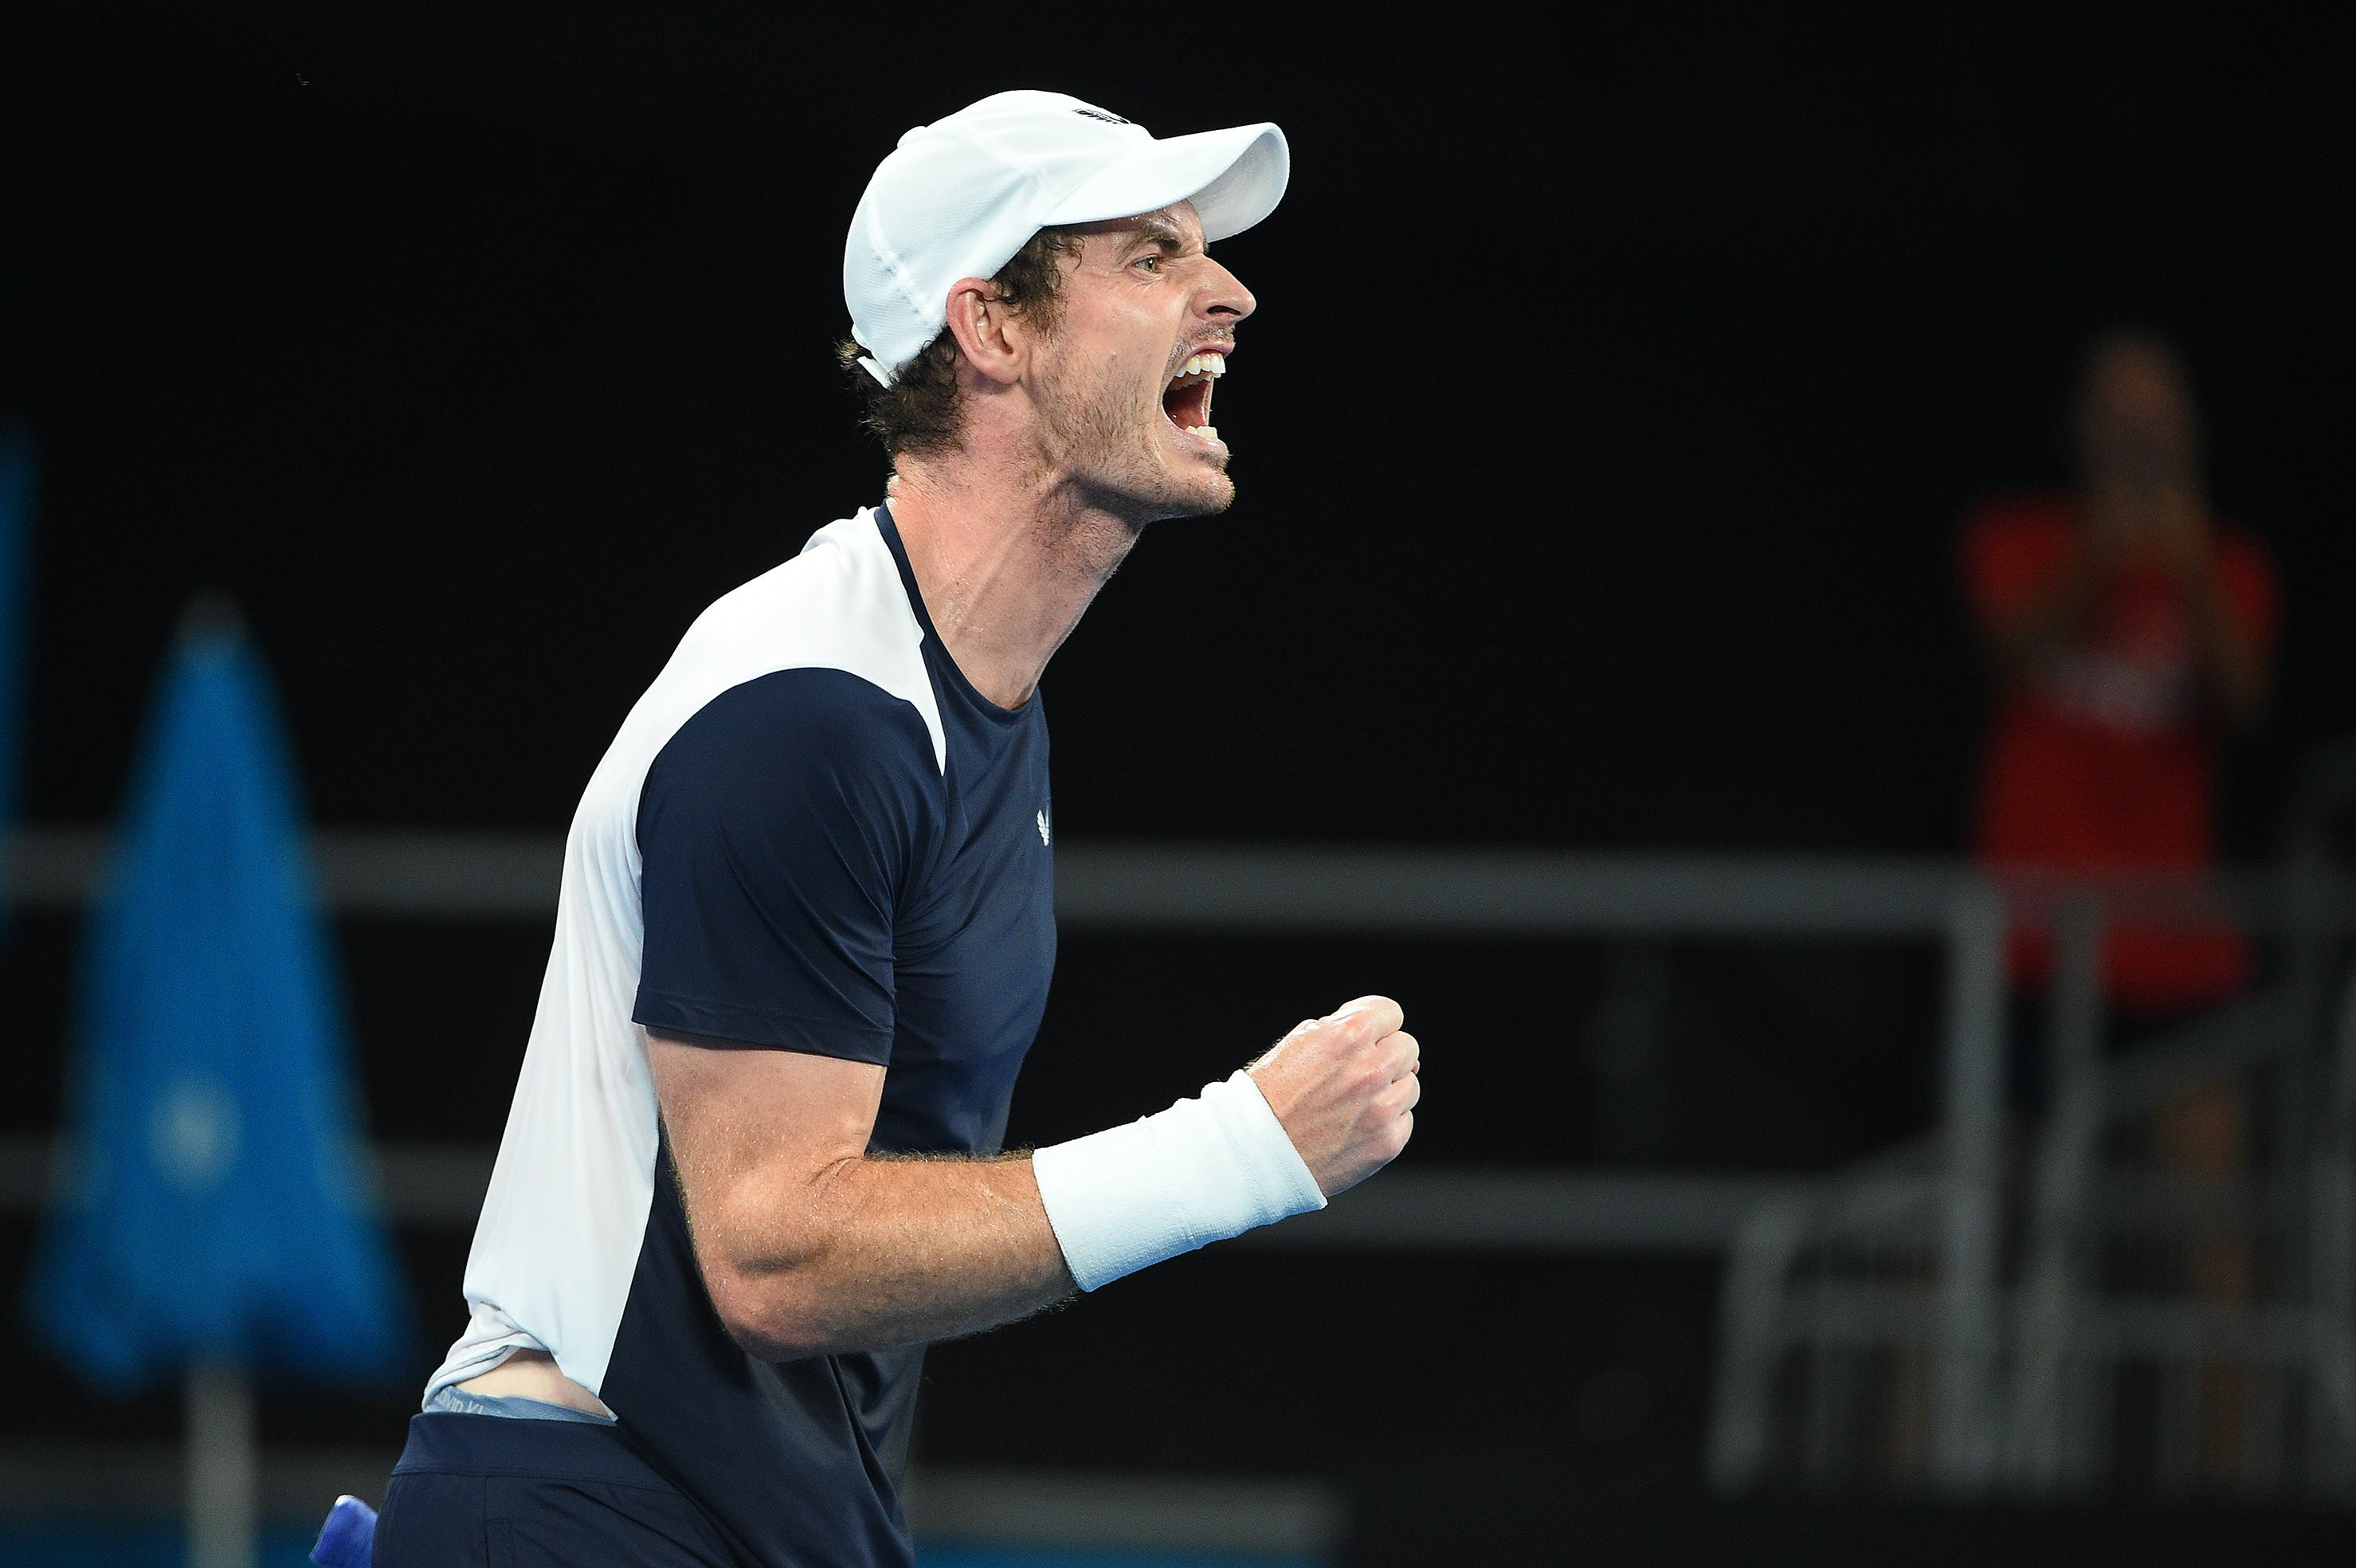 Andy Murray roaring at the Australian Open 2019